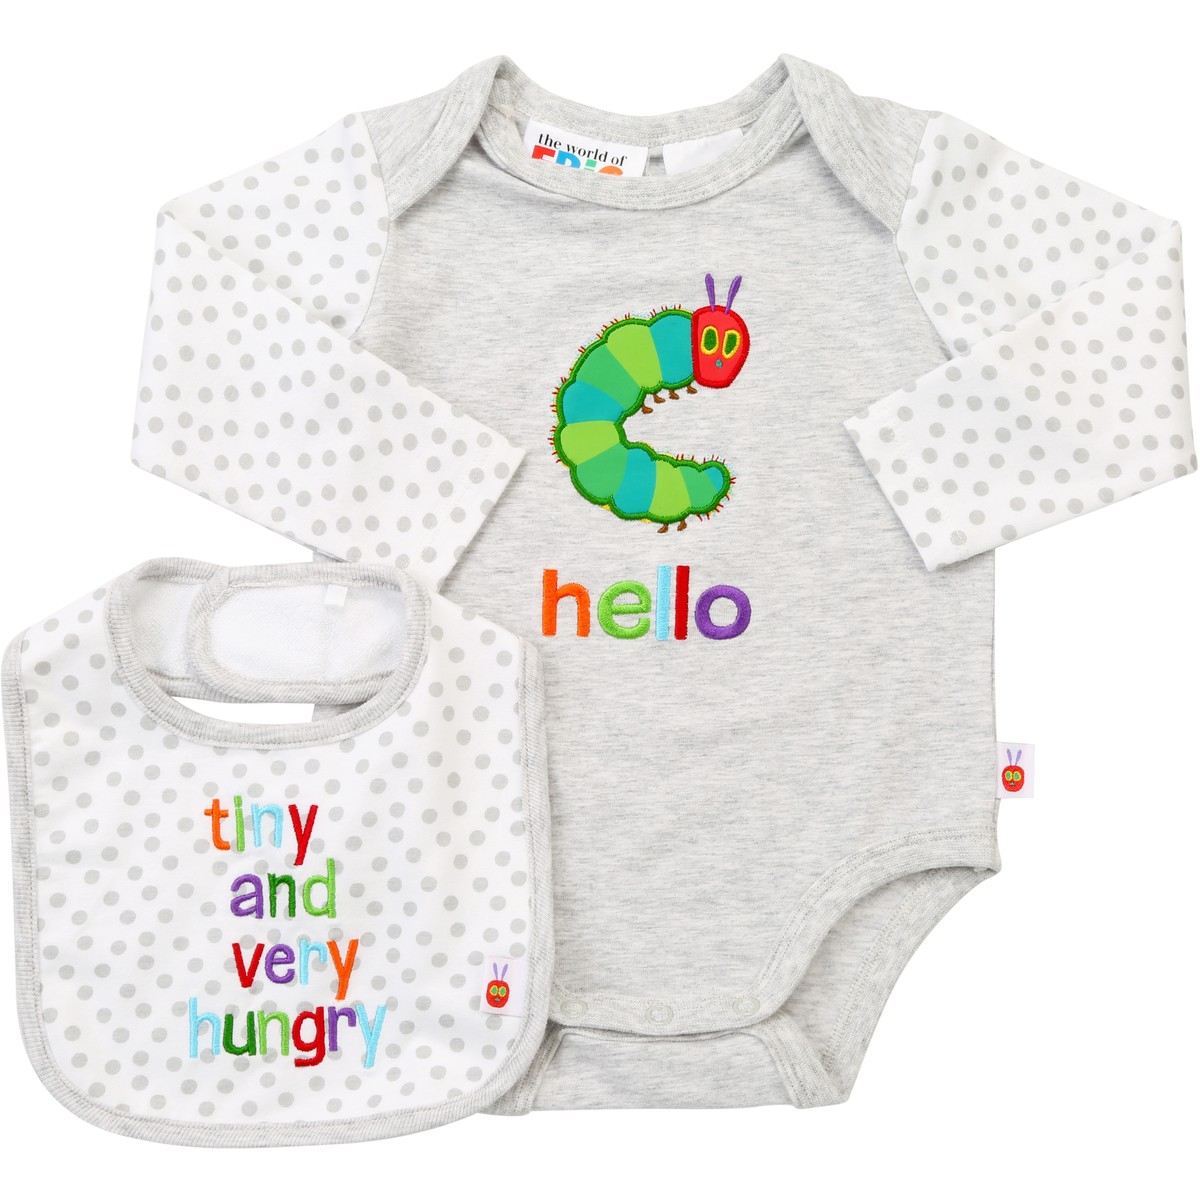 Cheap Baby Clothes Au The Very Hungry Caterpillar Baby Bodysuit And Bib Light Grey